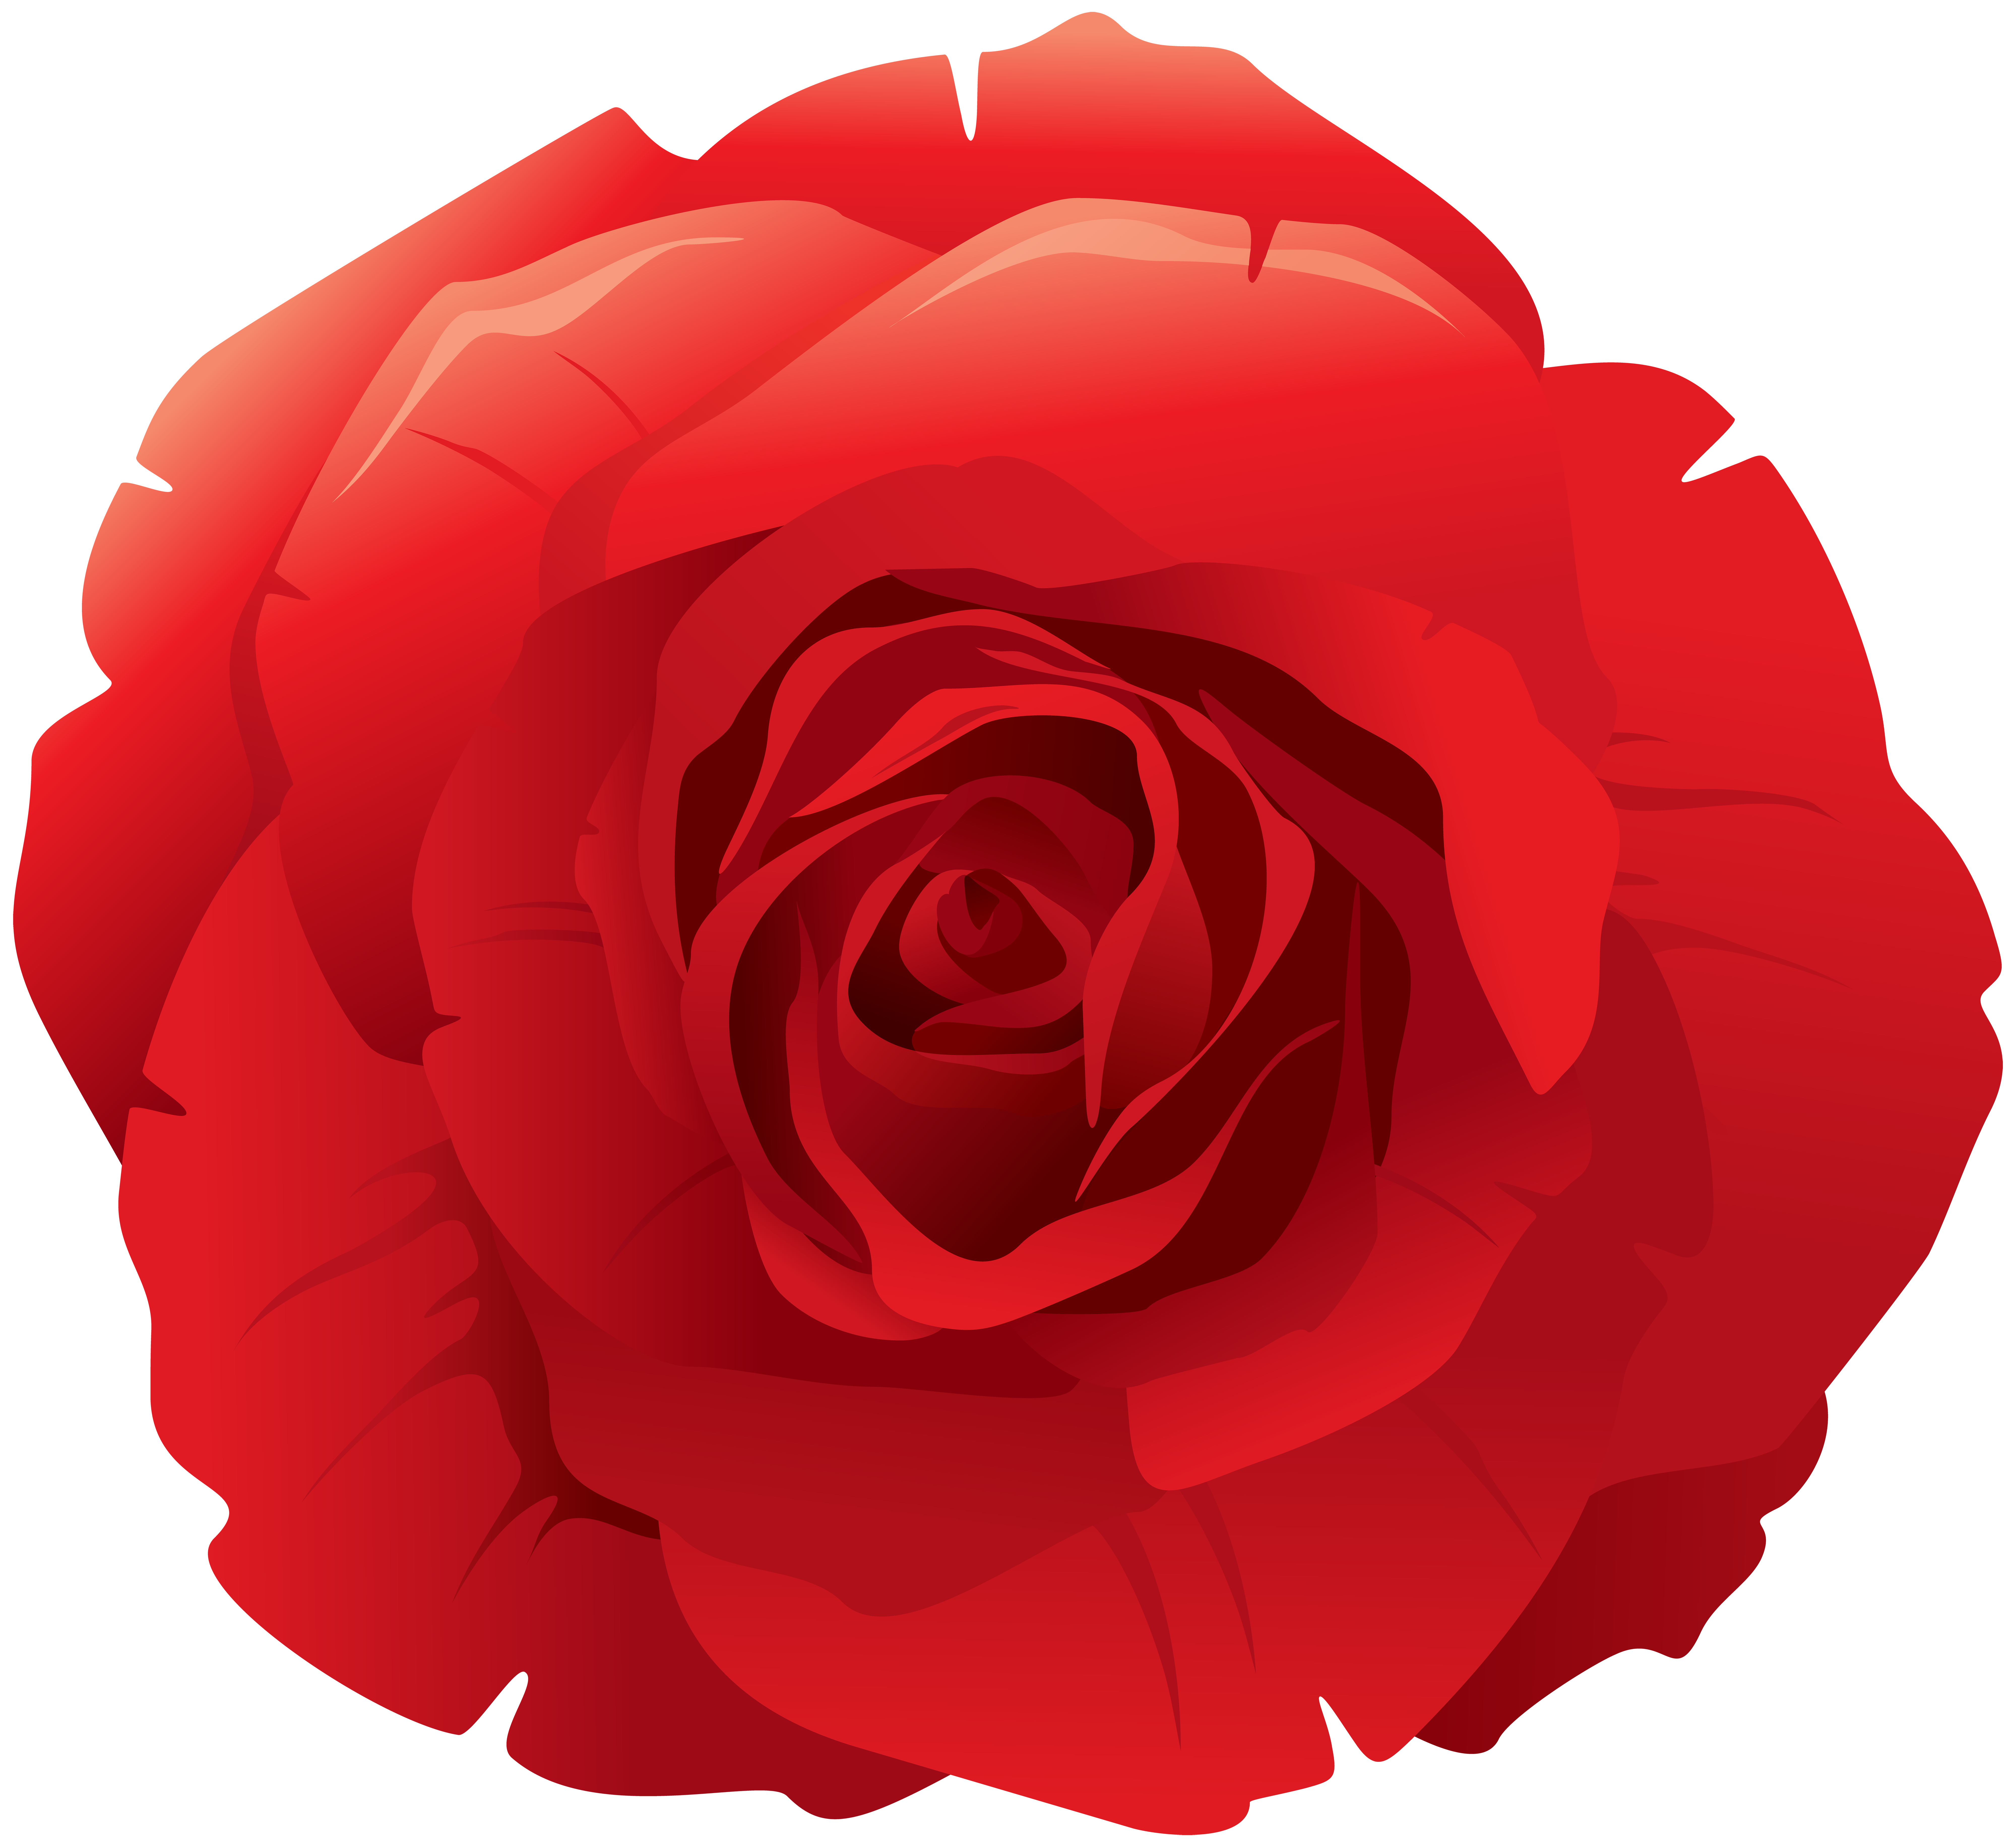 8000x7328 Red Rose Decorative Png Clip Artu200b Gallery Yopriceville